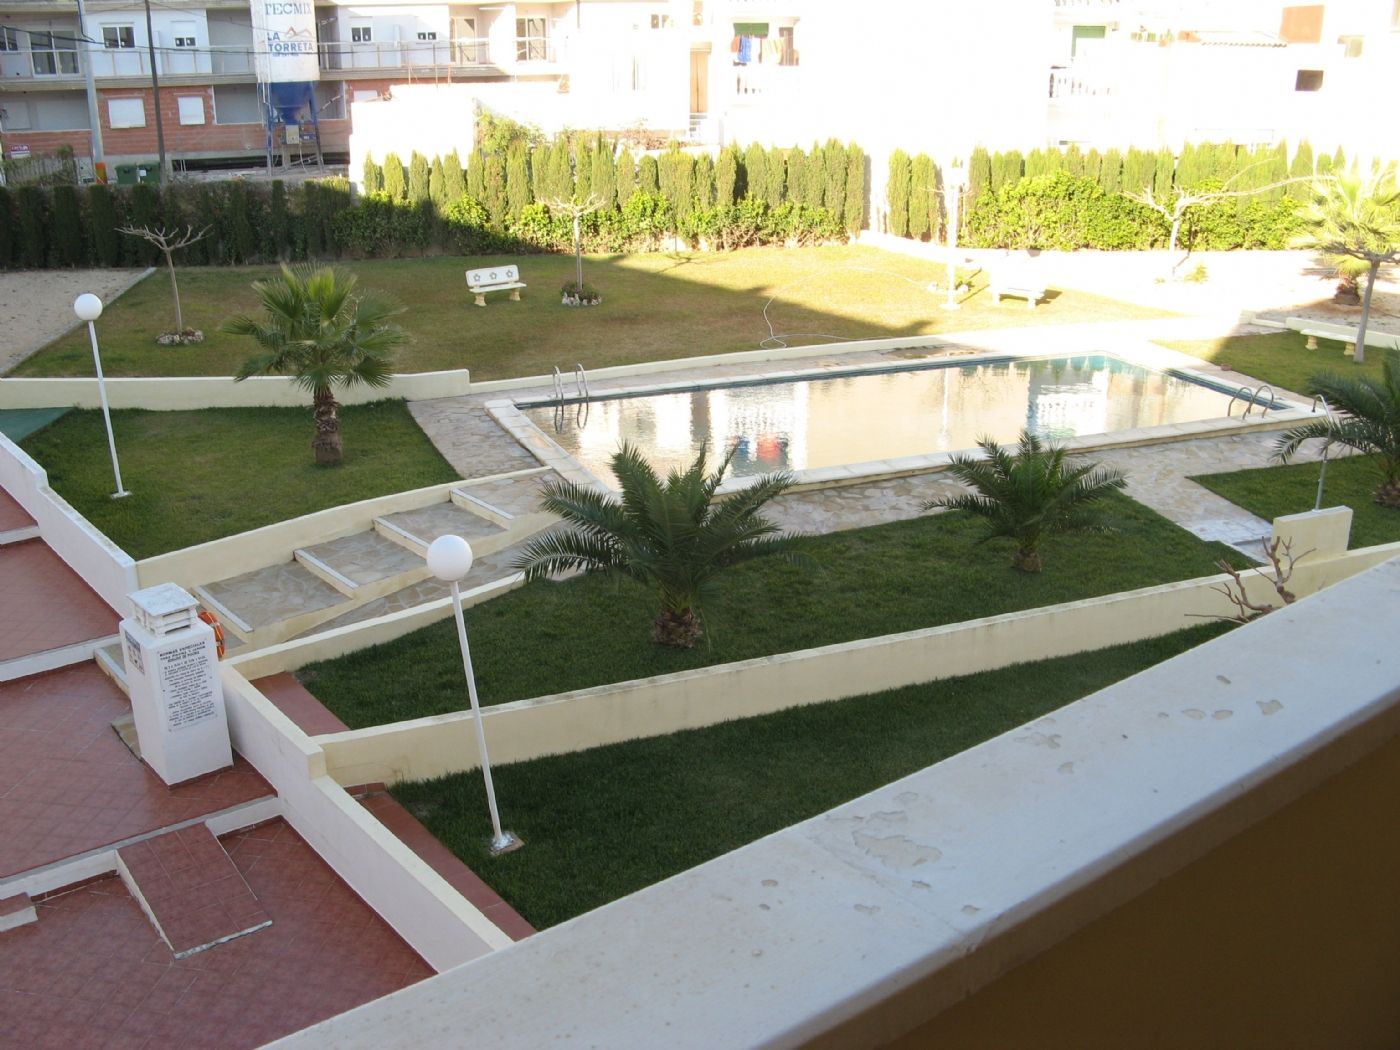 Miete Appartement in Avenida valencia, 3. Con piscina y cerca de la playa!